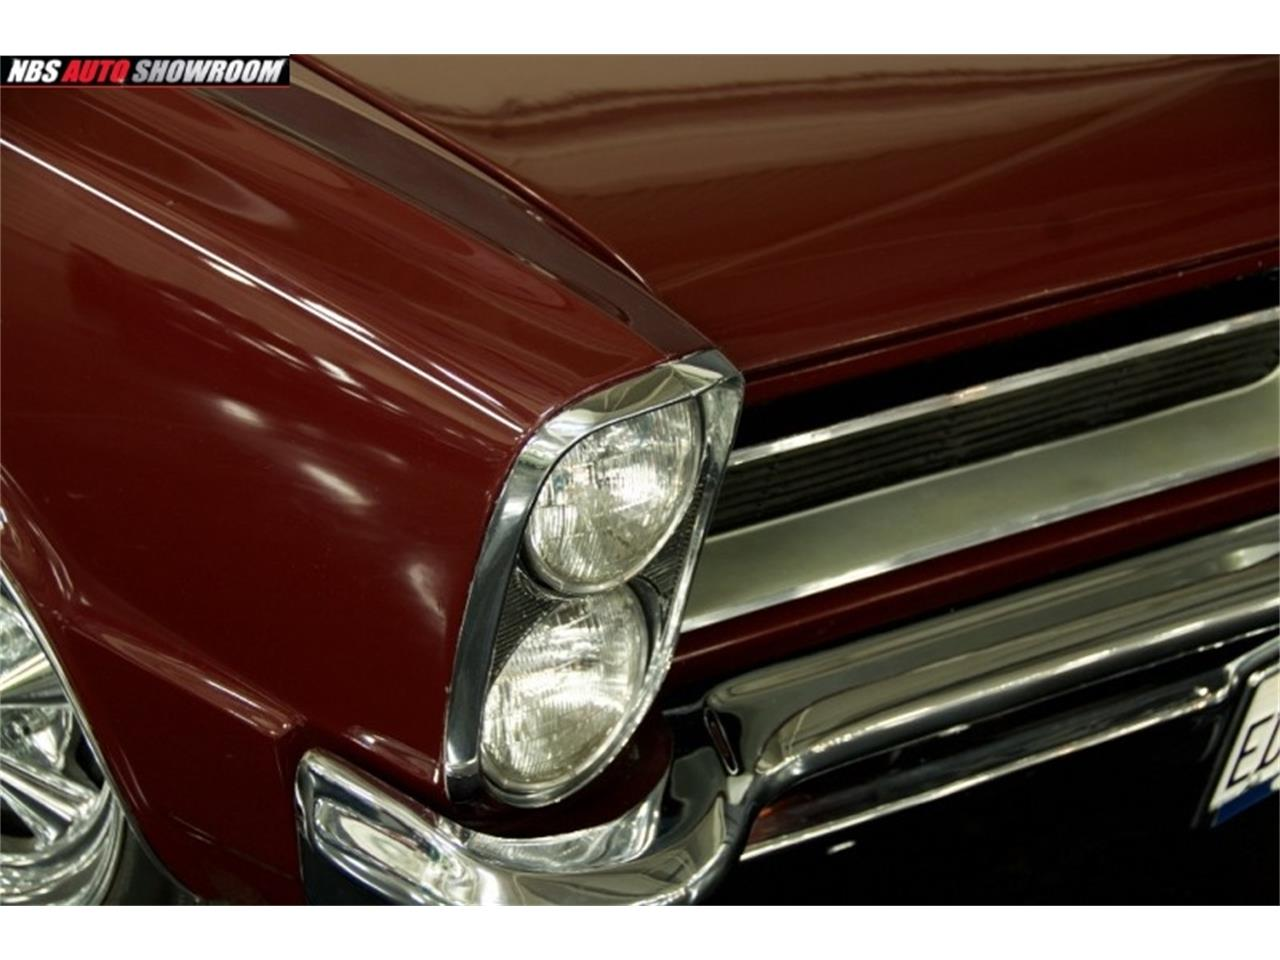 Large Picture of Classic 1965 GTO - $55,547.00 Offered by NBS Auto Showroom - OWIJ